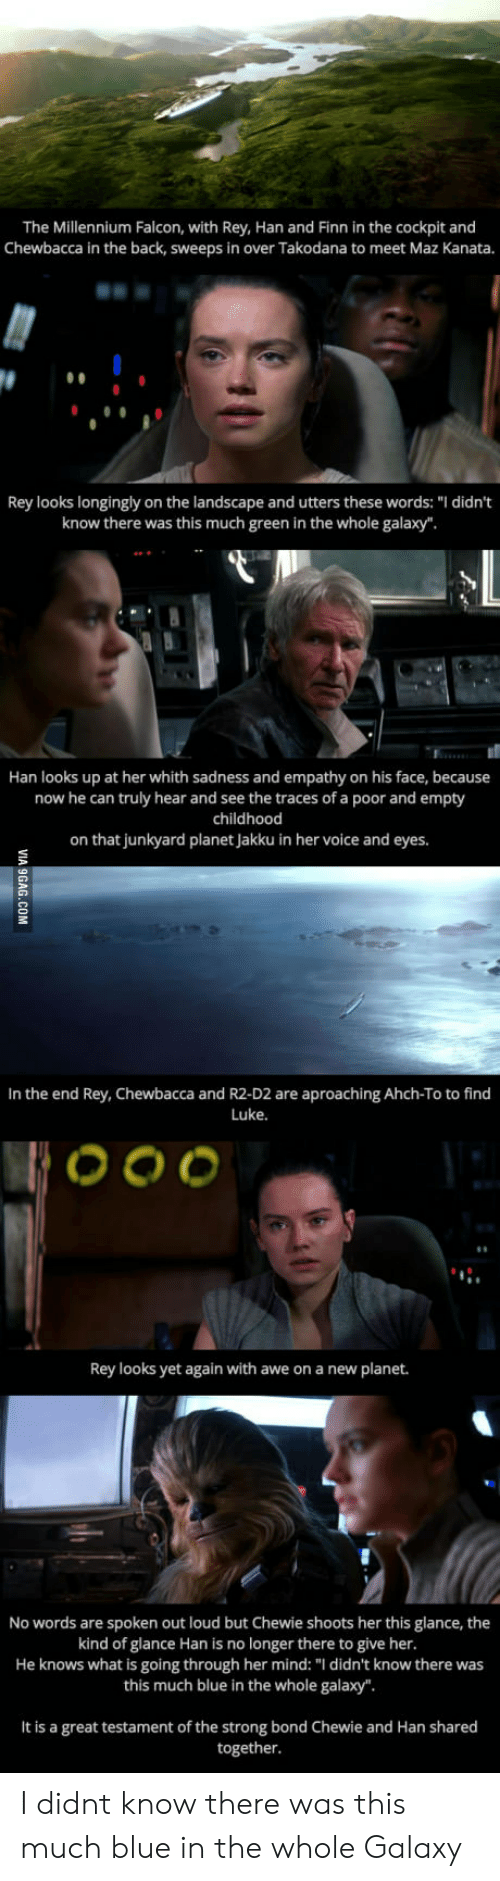 """Jakku: The Millennium Falcon, with Rey, Han and Finn in the cockpit and  Chewbacca in the back, Sweeps in over Takodana to meet Maz Kanata.  Rey looks longingly on the landscape and utters these words: """" didn't  know there was this much green in the whole galax  Han looks up at her whith sadness and empathy on his face, because  now he can truly hear and see the traces of a poor and empty  childhood  on that junkyard planet Jakku in her voice and eyes.  In the end Rey, Chewbacca and R2-D2 are aproaching Ahch-To to find  Luke.  Rey looks yet again with awe on a new planet.  No words are spoken out loud but Chewie shoots her this glance, the  kind of glance Han is no longer there to give her.  He knows what is going through her mind: """"I didn't know there was  this much blue in the whole galaxy"""".  It is a great testament of the strong bond Chewie and Han shared  together I didnt know there was this much blue in the whole Galaxy"""